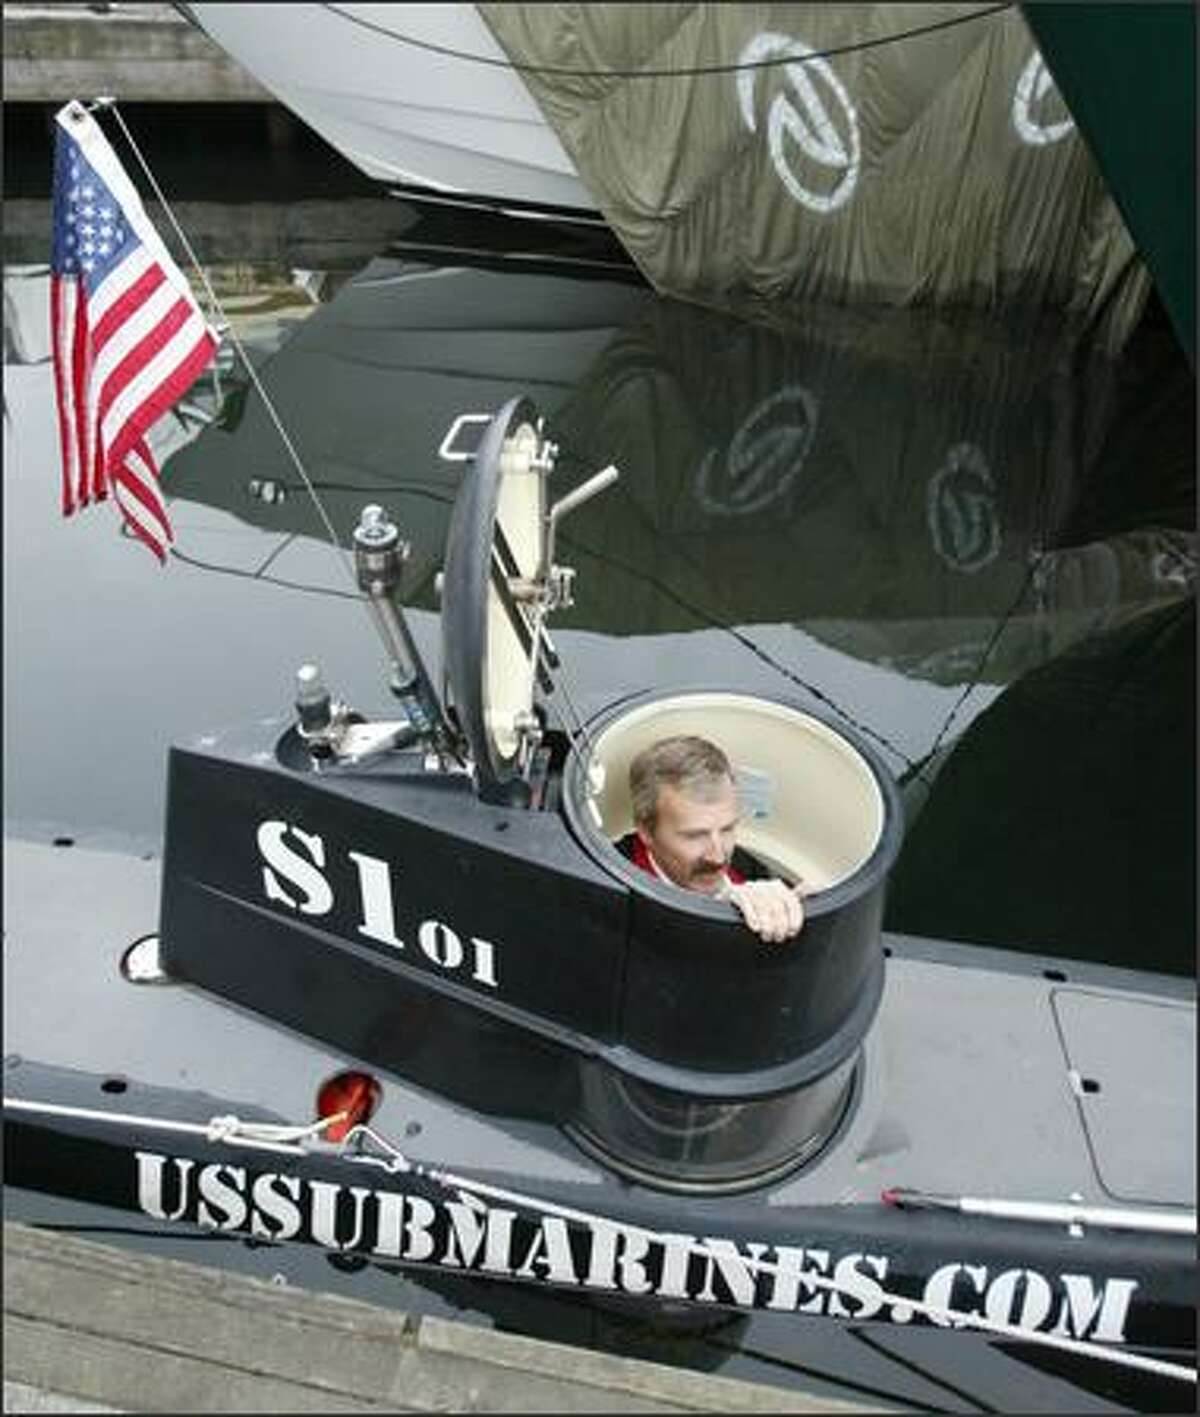 Ellis Adams, vice president of U.S. Submarines, climbs out of one of the vessels.